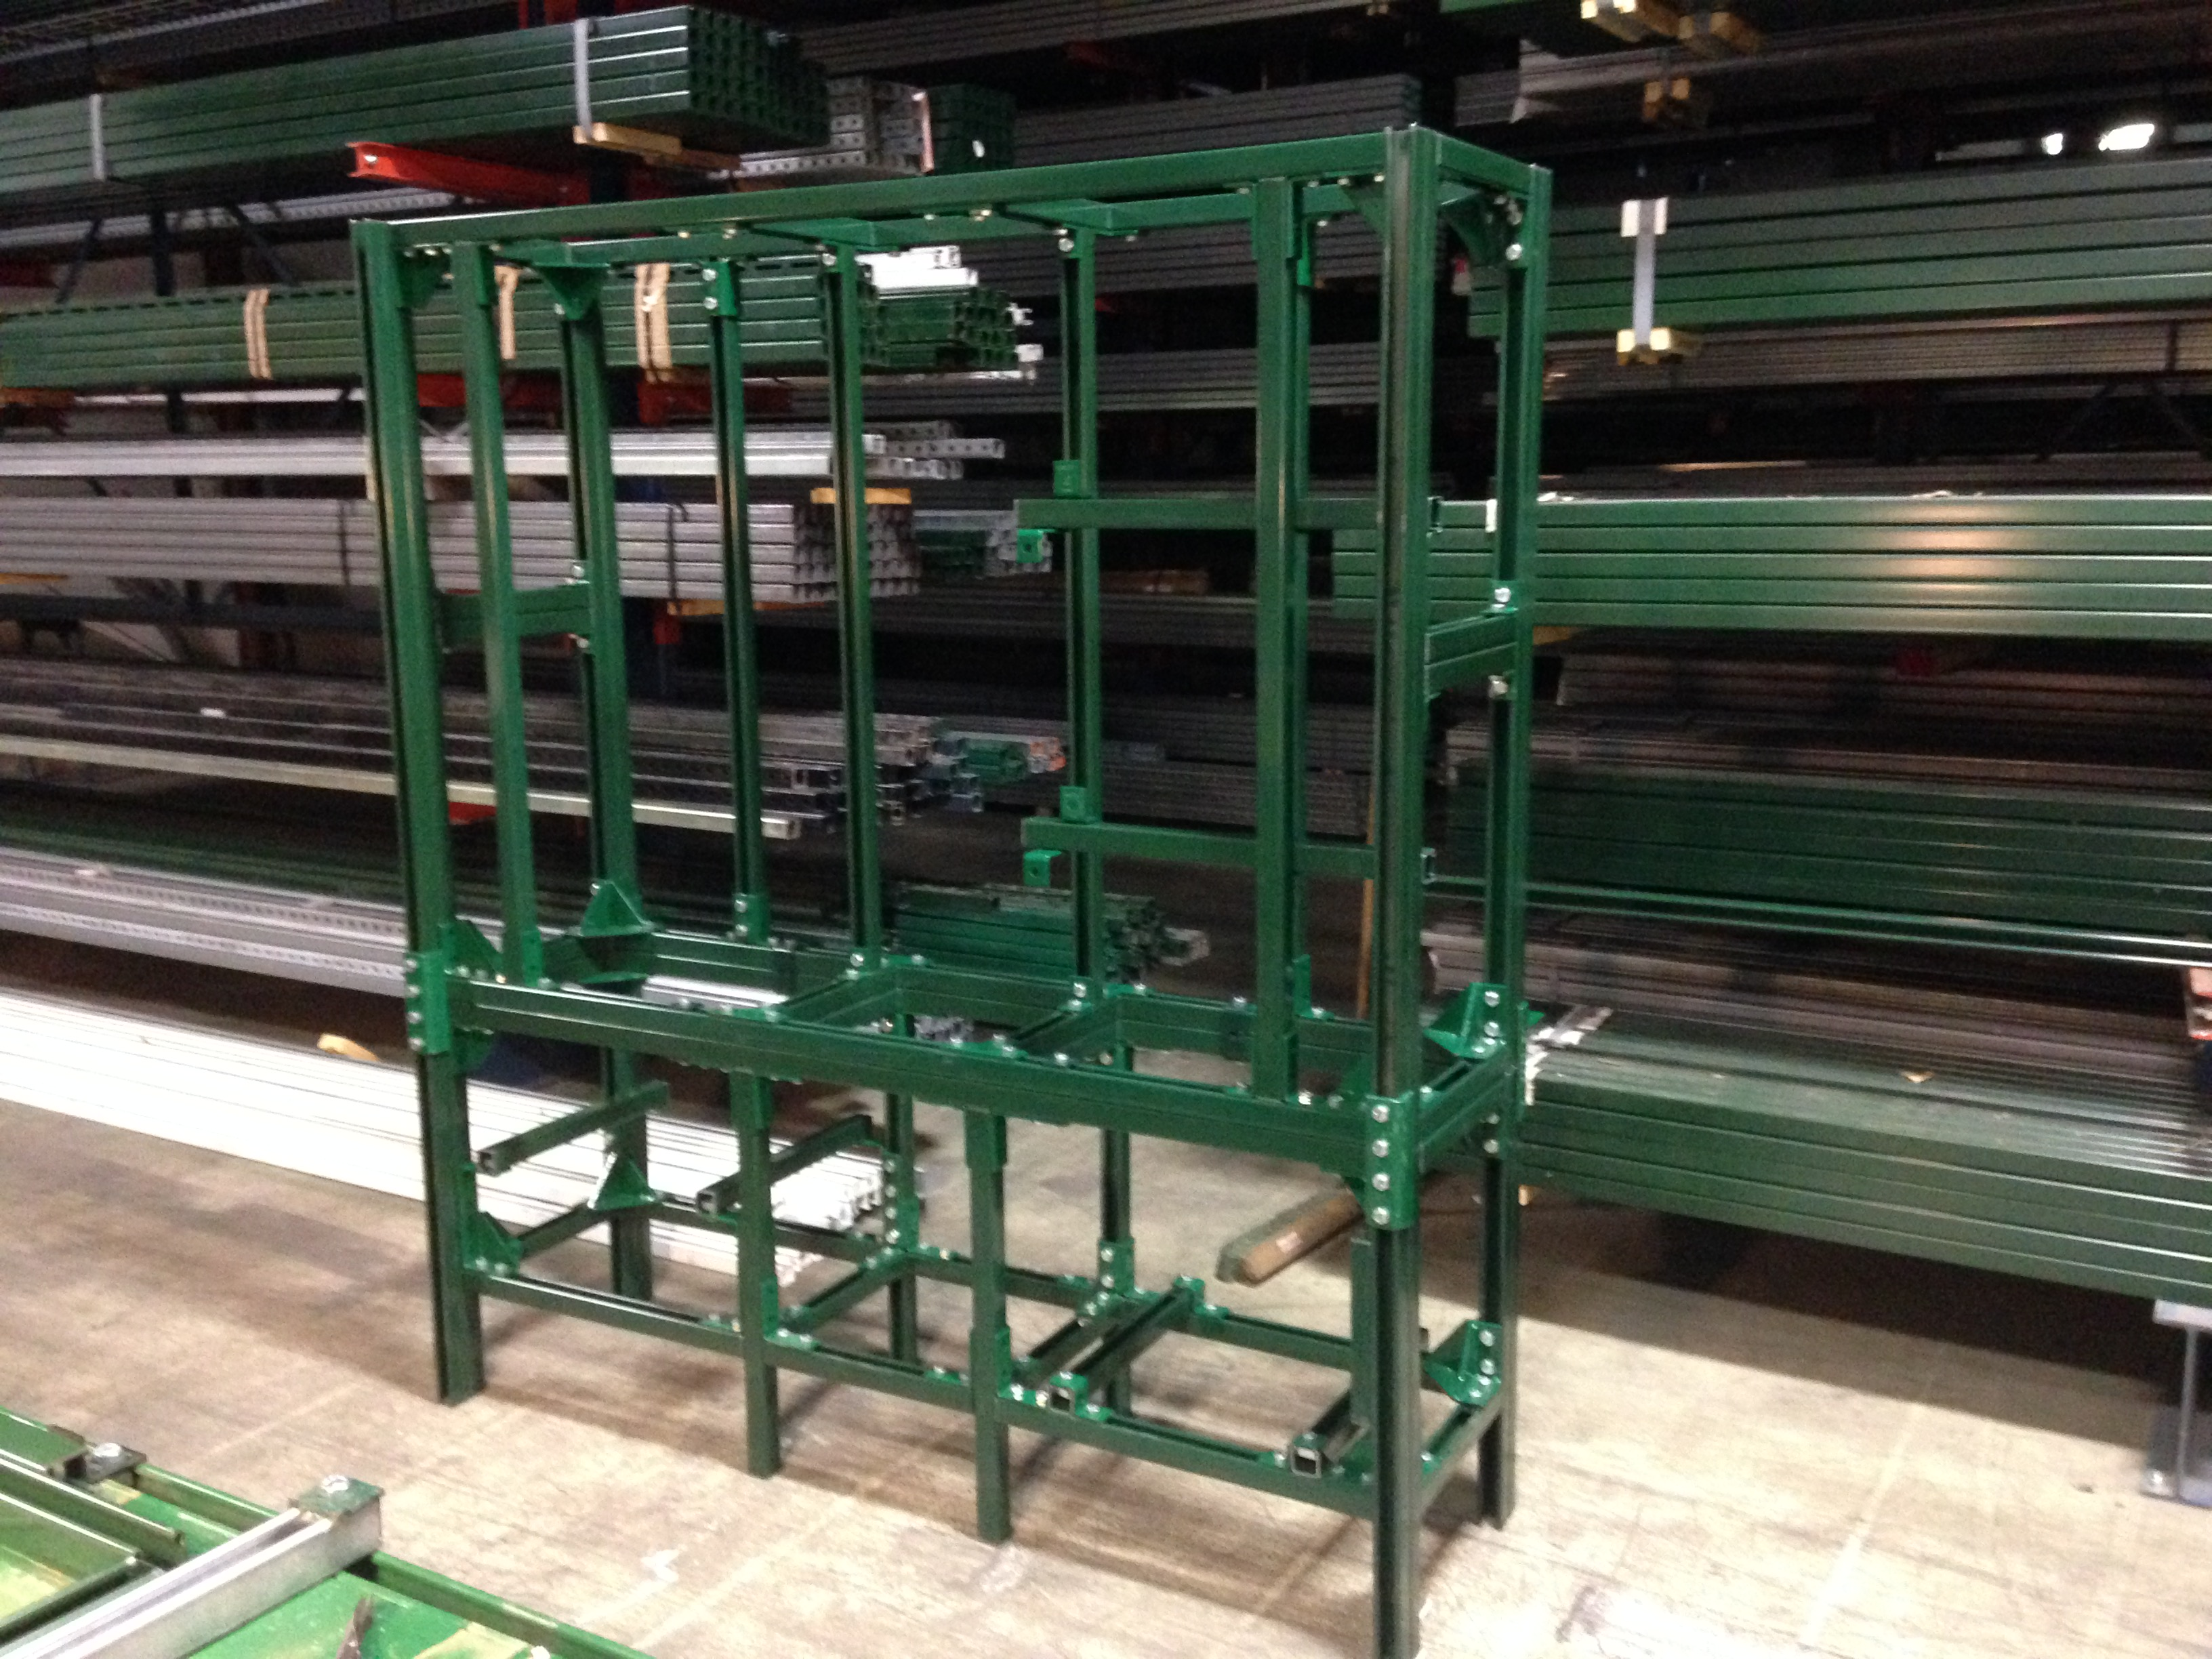 Theclassica furthermore Livestock Fencing furthermore Loading Dock Covers moreover Machining additionally Bus Shelters. on metal fabrication gallery